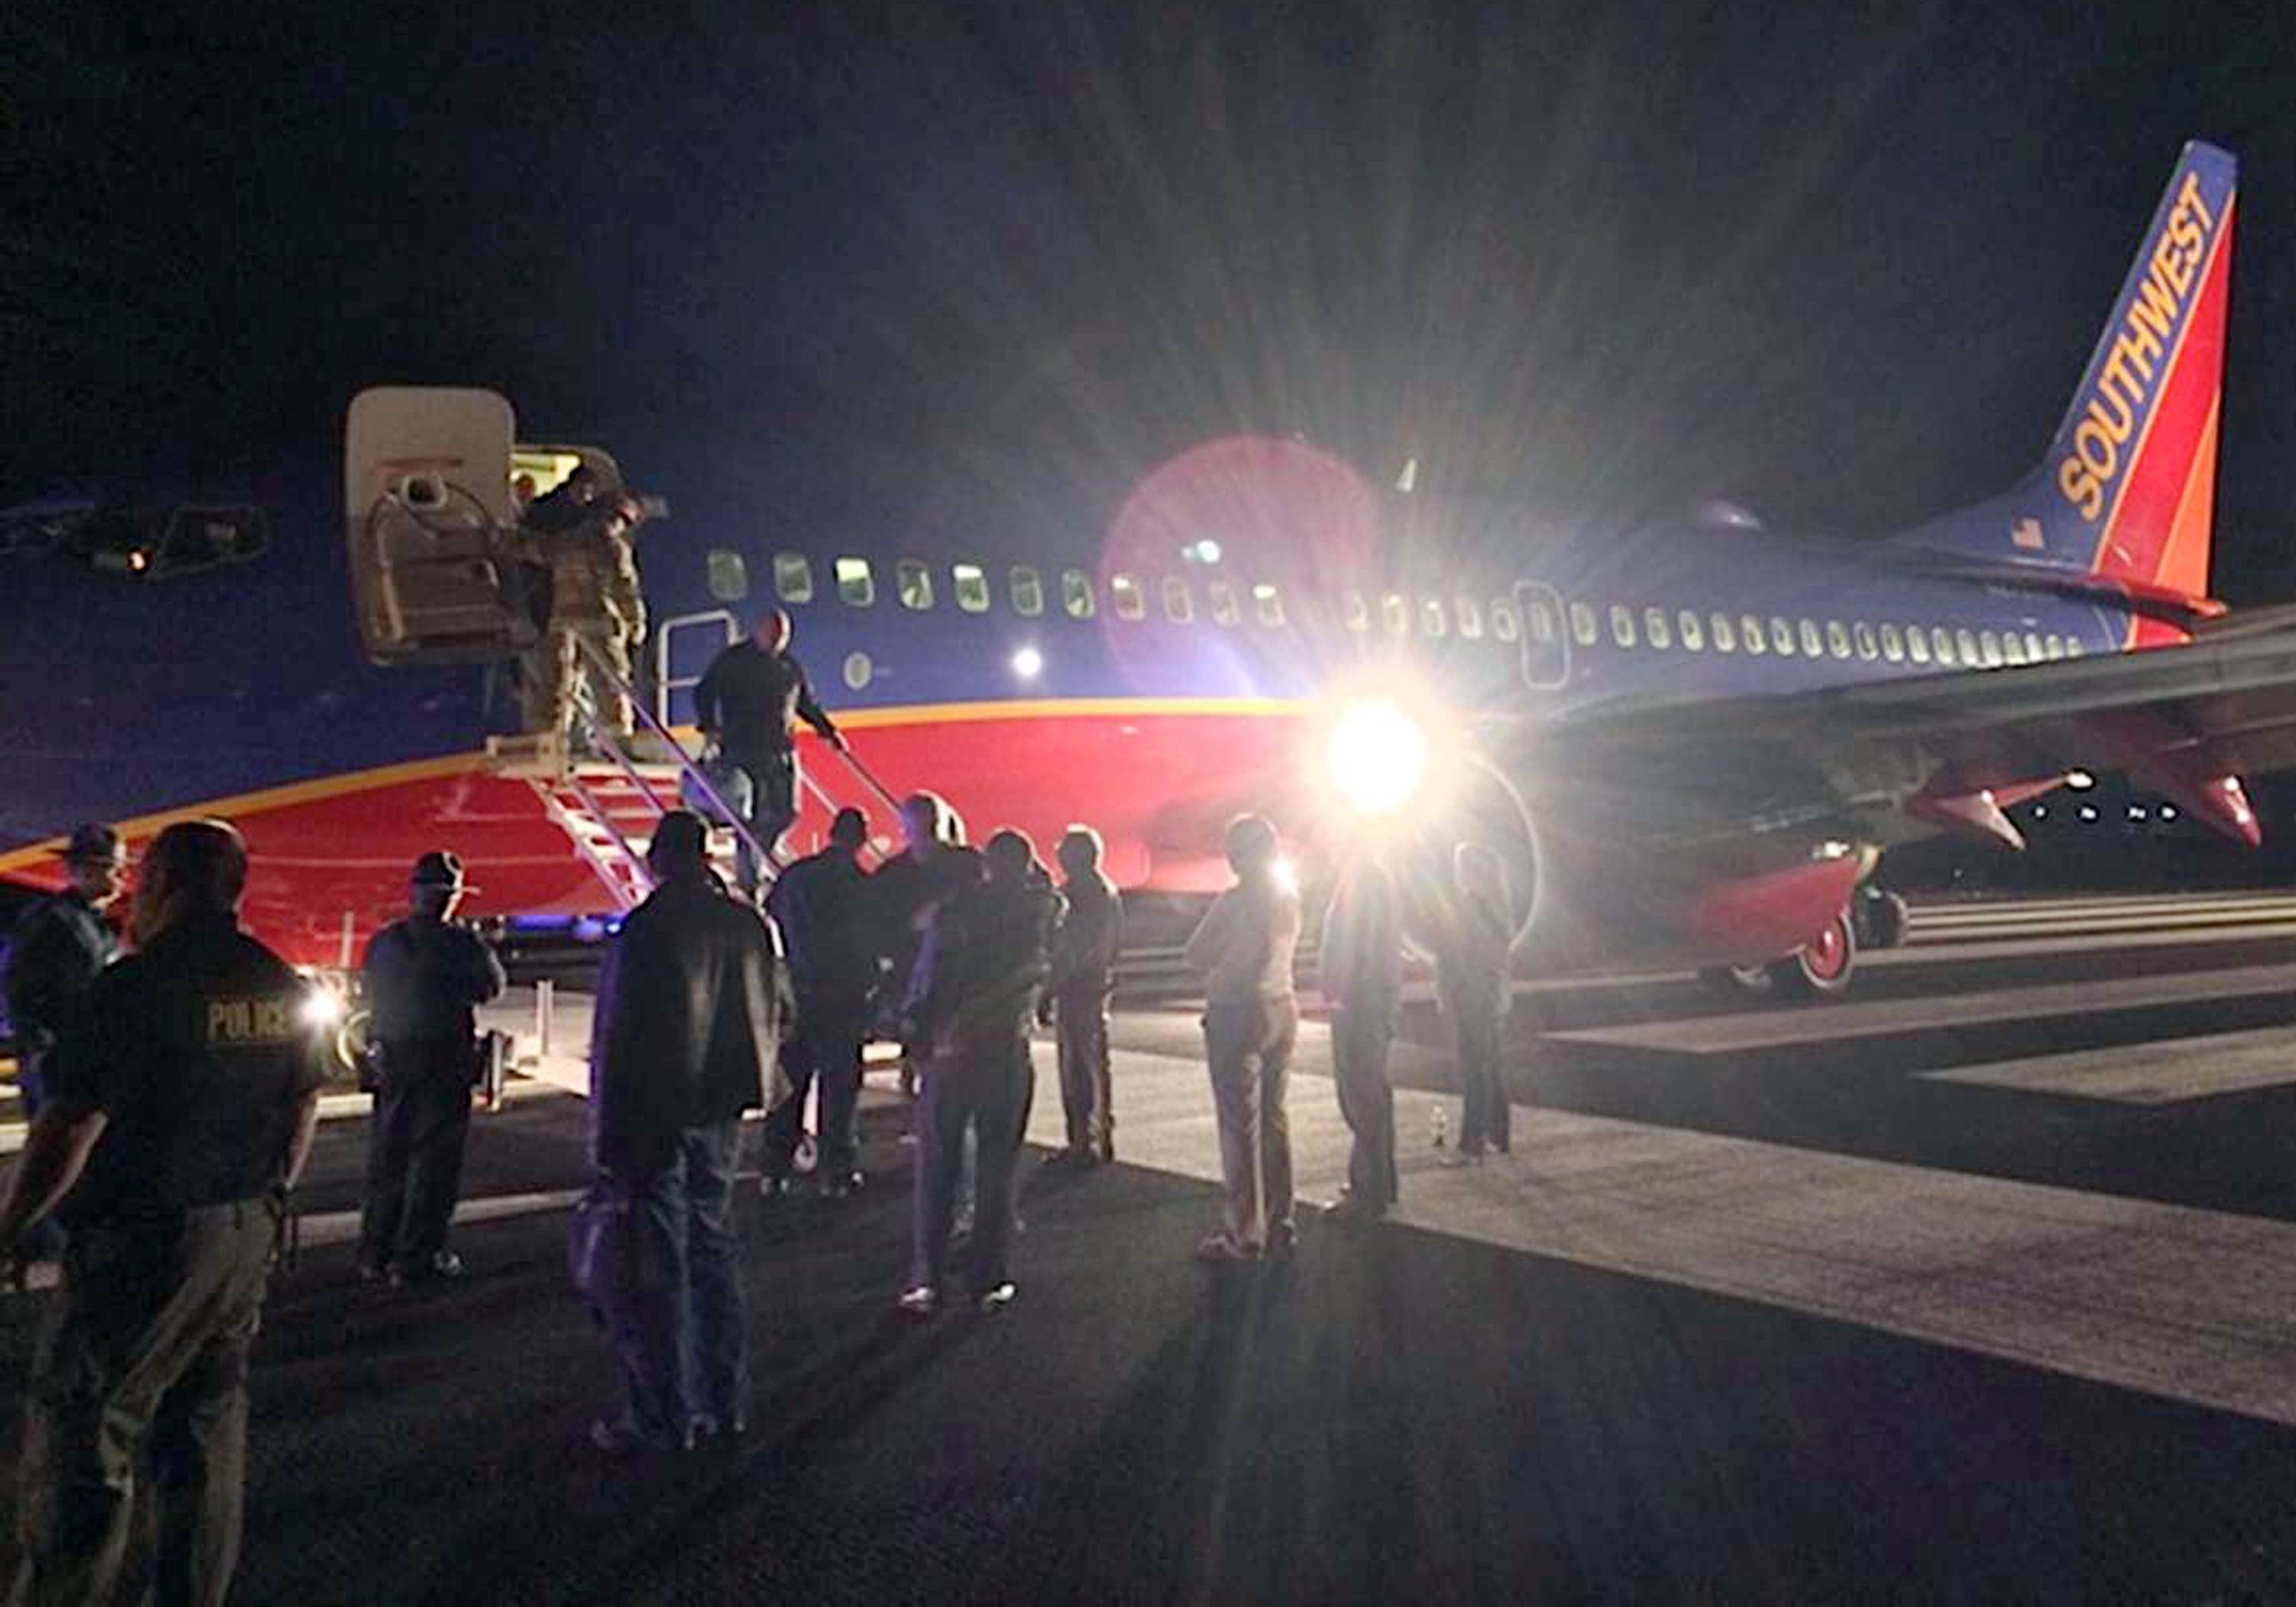 Passengers exit a Southwest Airlines flight after it mistakenly landed at a small airport in Hollister, Mo., rather than one several miles away in Branson. File)